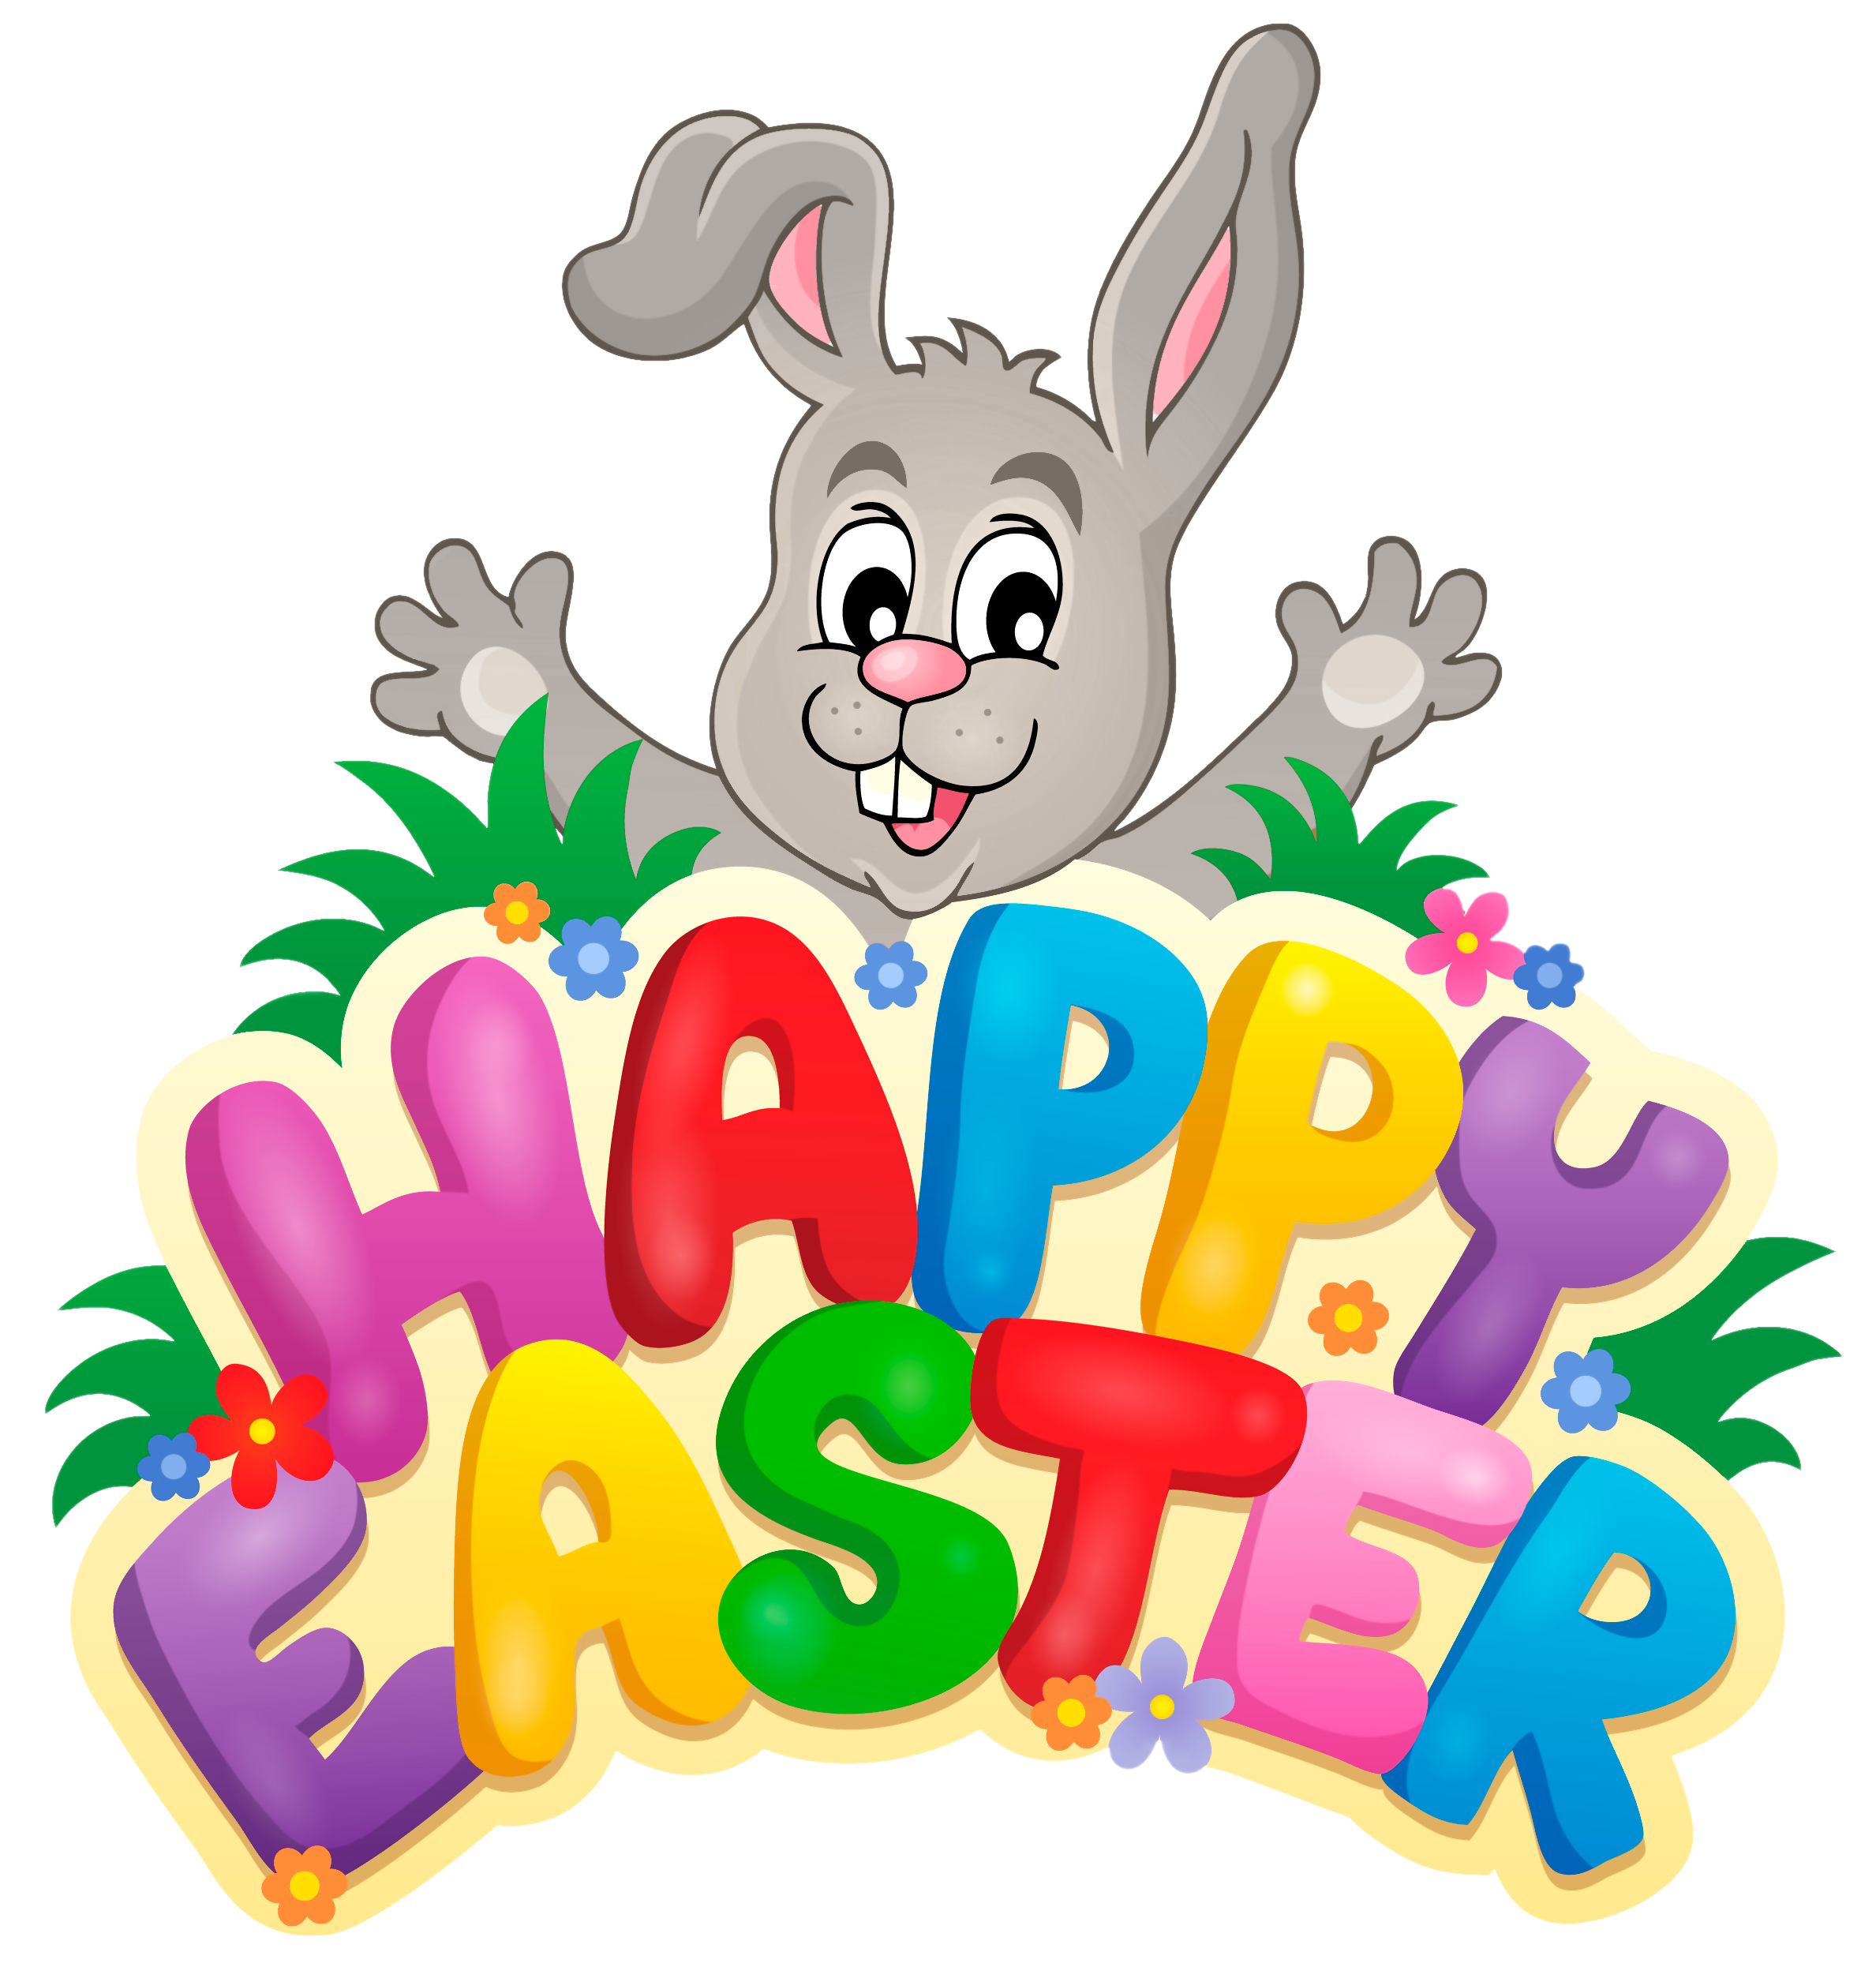 Happy easter cross clipart picture black and white library Happy Easter to all my Pin pals and followers!!Have a wonderful ... picture black and white library